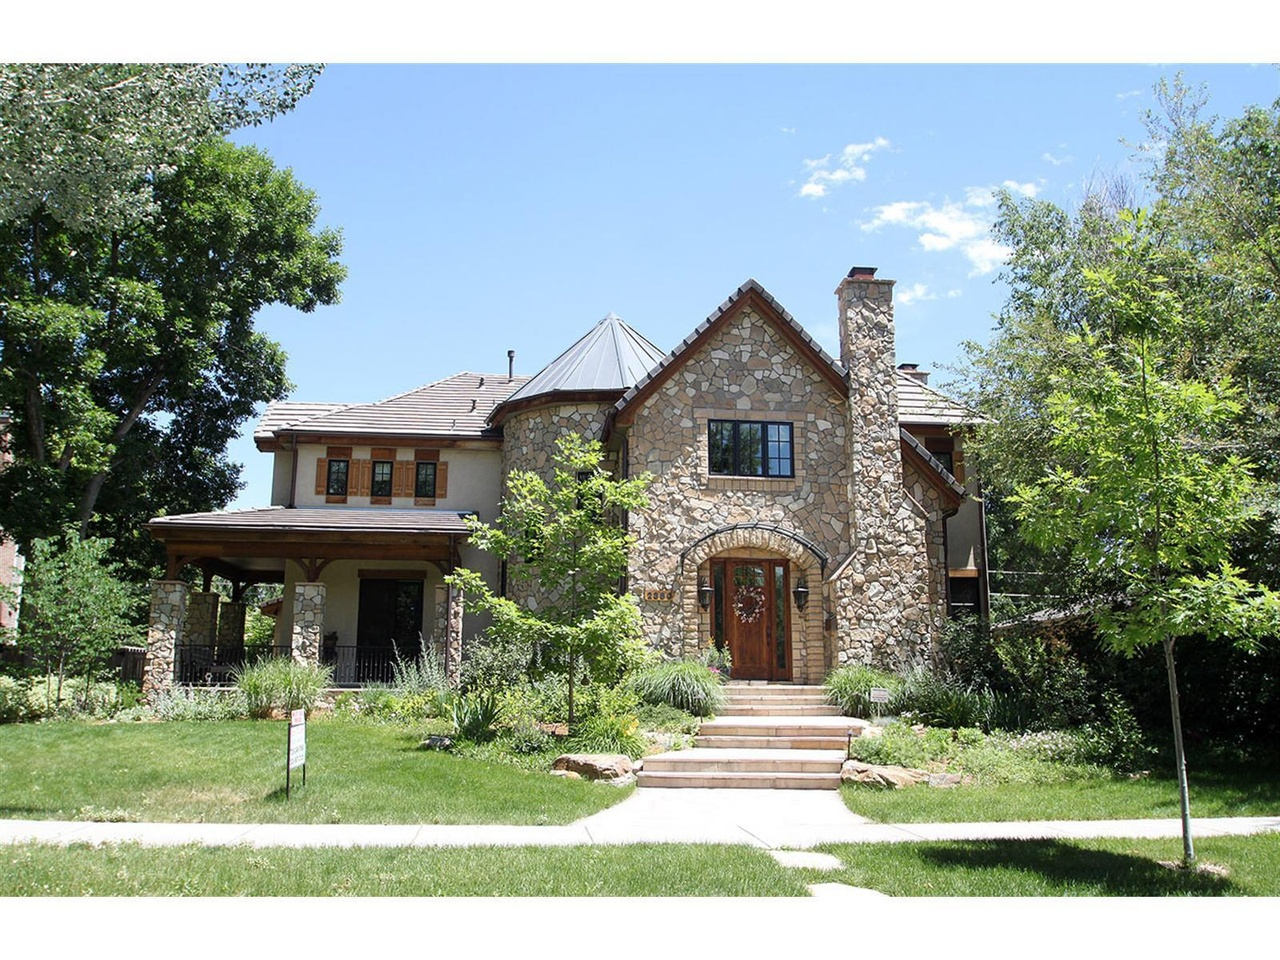 2380 S ADAMS St, Denver, CO 80210 - 5 beds/5.75 baths New Home Floor Plans Adams on adams homes 2240 model, adams home plans by number, adams homes 2169 model, adams homes model 2265, adams homes gulf breeze fl, adams 3000 floor plan interior, adams homes 1820 plan, adams homes 2508 plan, adams homes model 2010, adams homes model 3000, your plans, adams homes layout, adams homes kitchens,